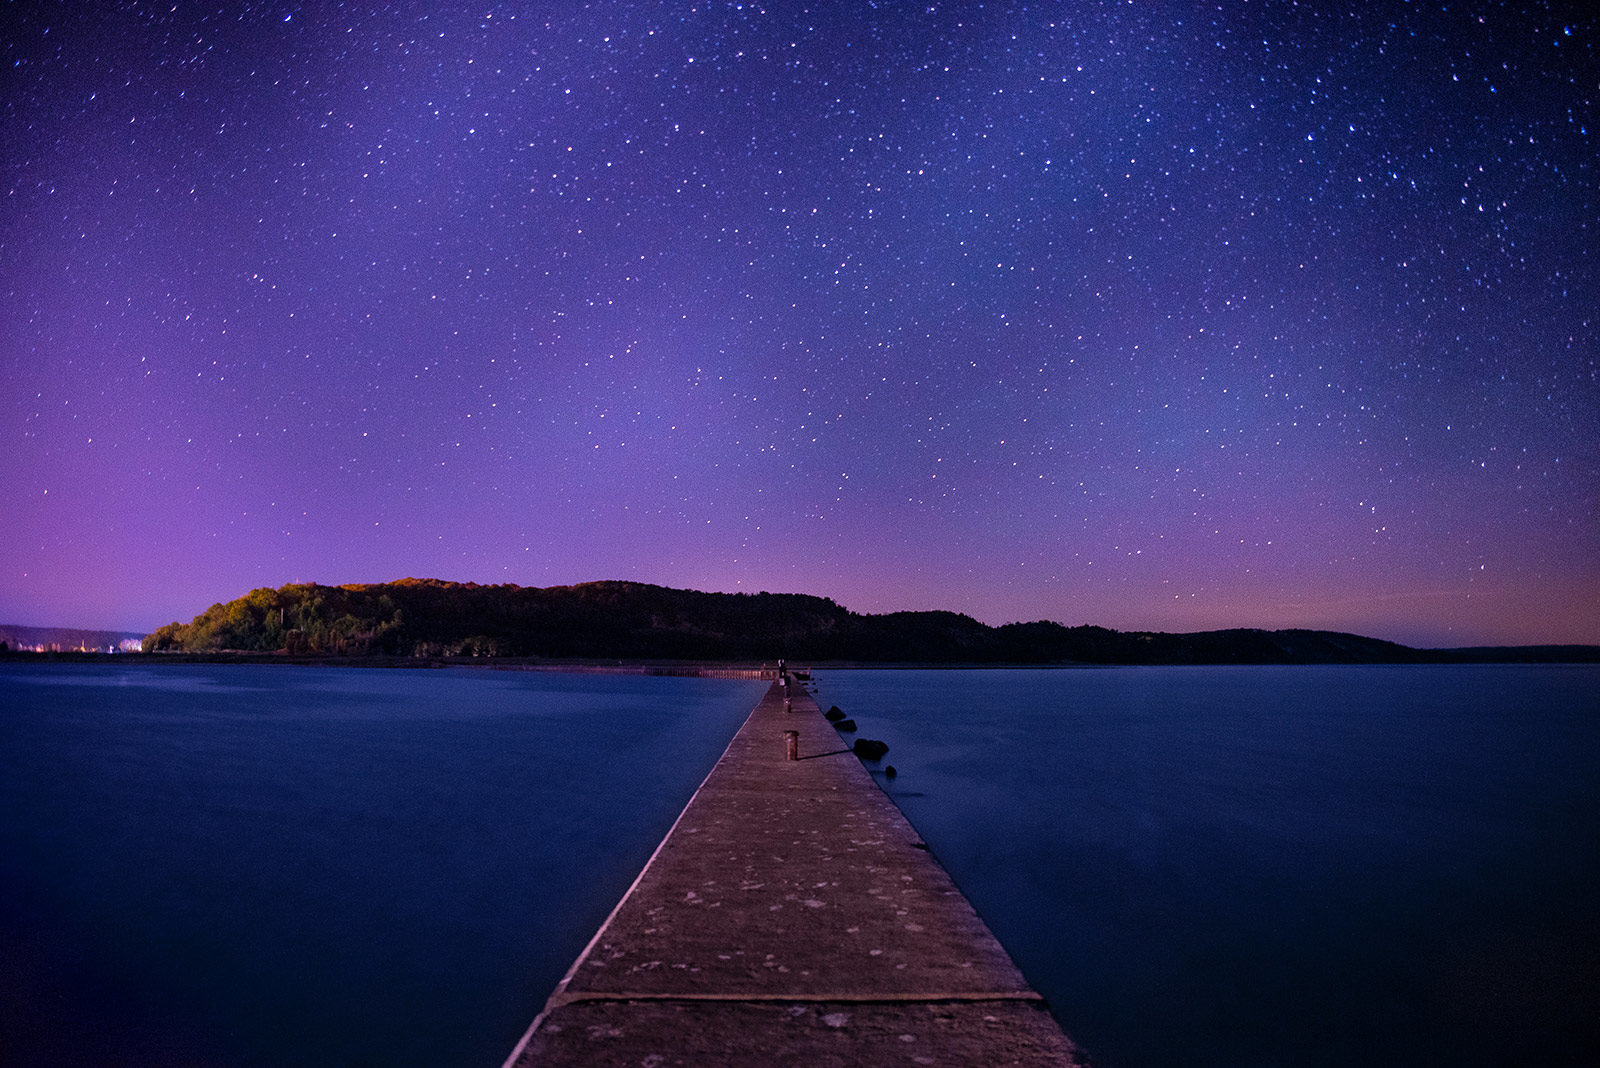 Long cement walkway over still blue water leading to island under blue and purple starry sky.